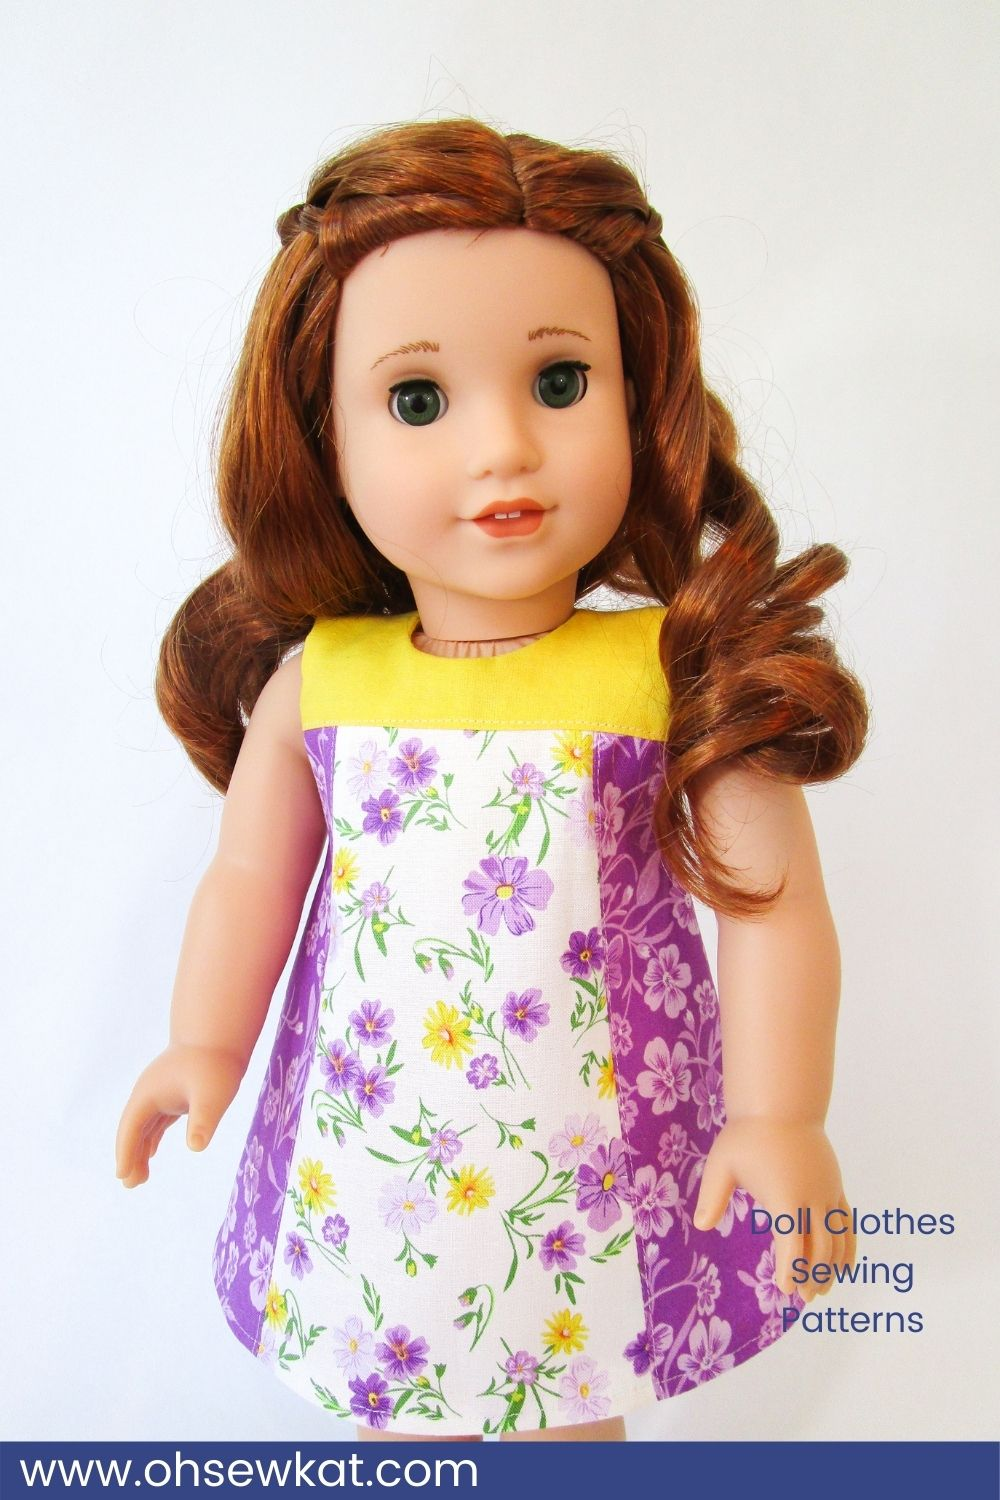 Make an easy colorblock sundress for your 18 inch American Girl doll with the Summertime Stroll PDF sewing pattern from Oh Sew Kat! Choose your own look and DIY your doll clothes to match your girl's style. Find more easy to sew beginner level patterns at Oh Sew Kat!